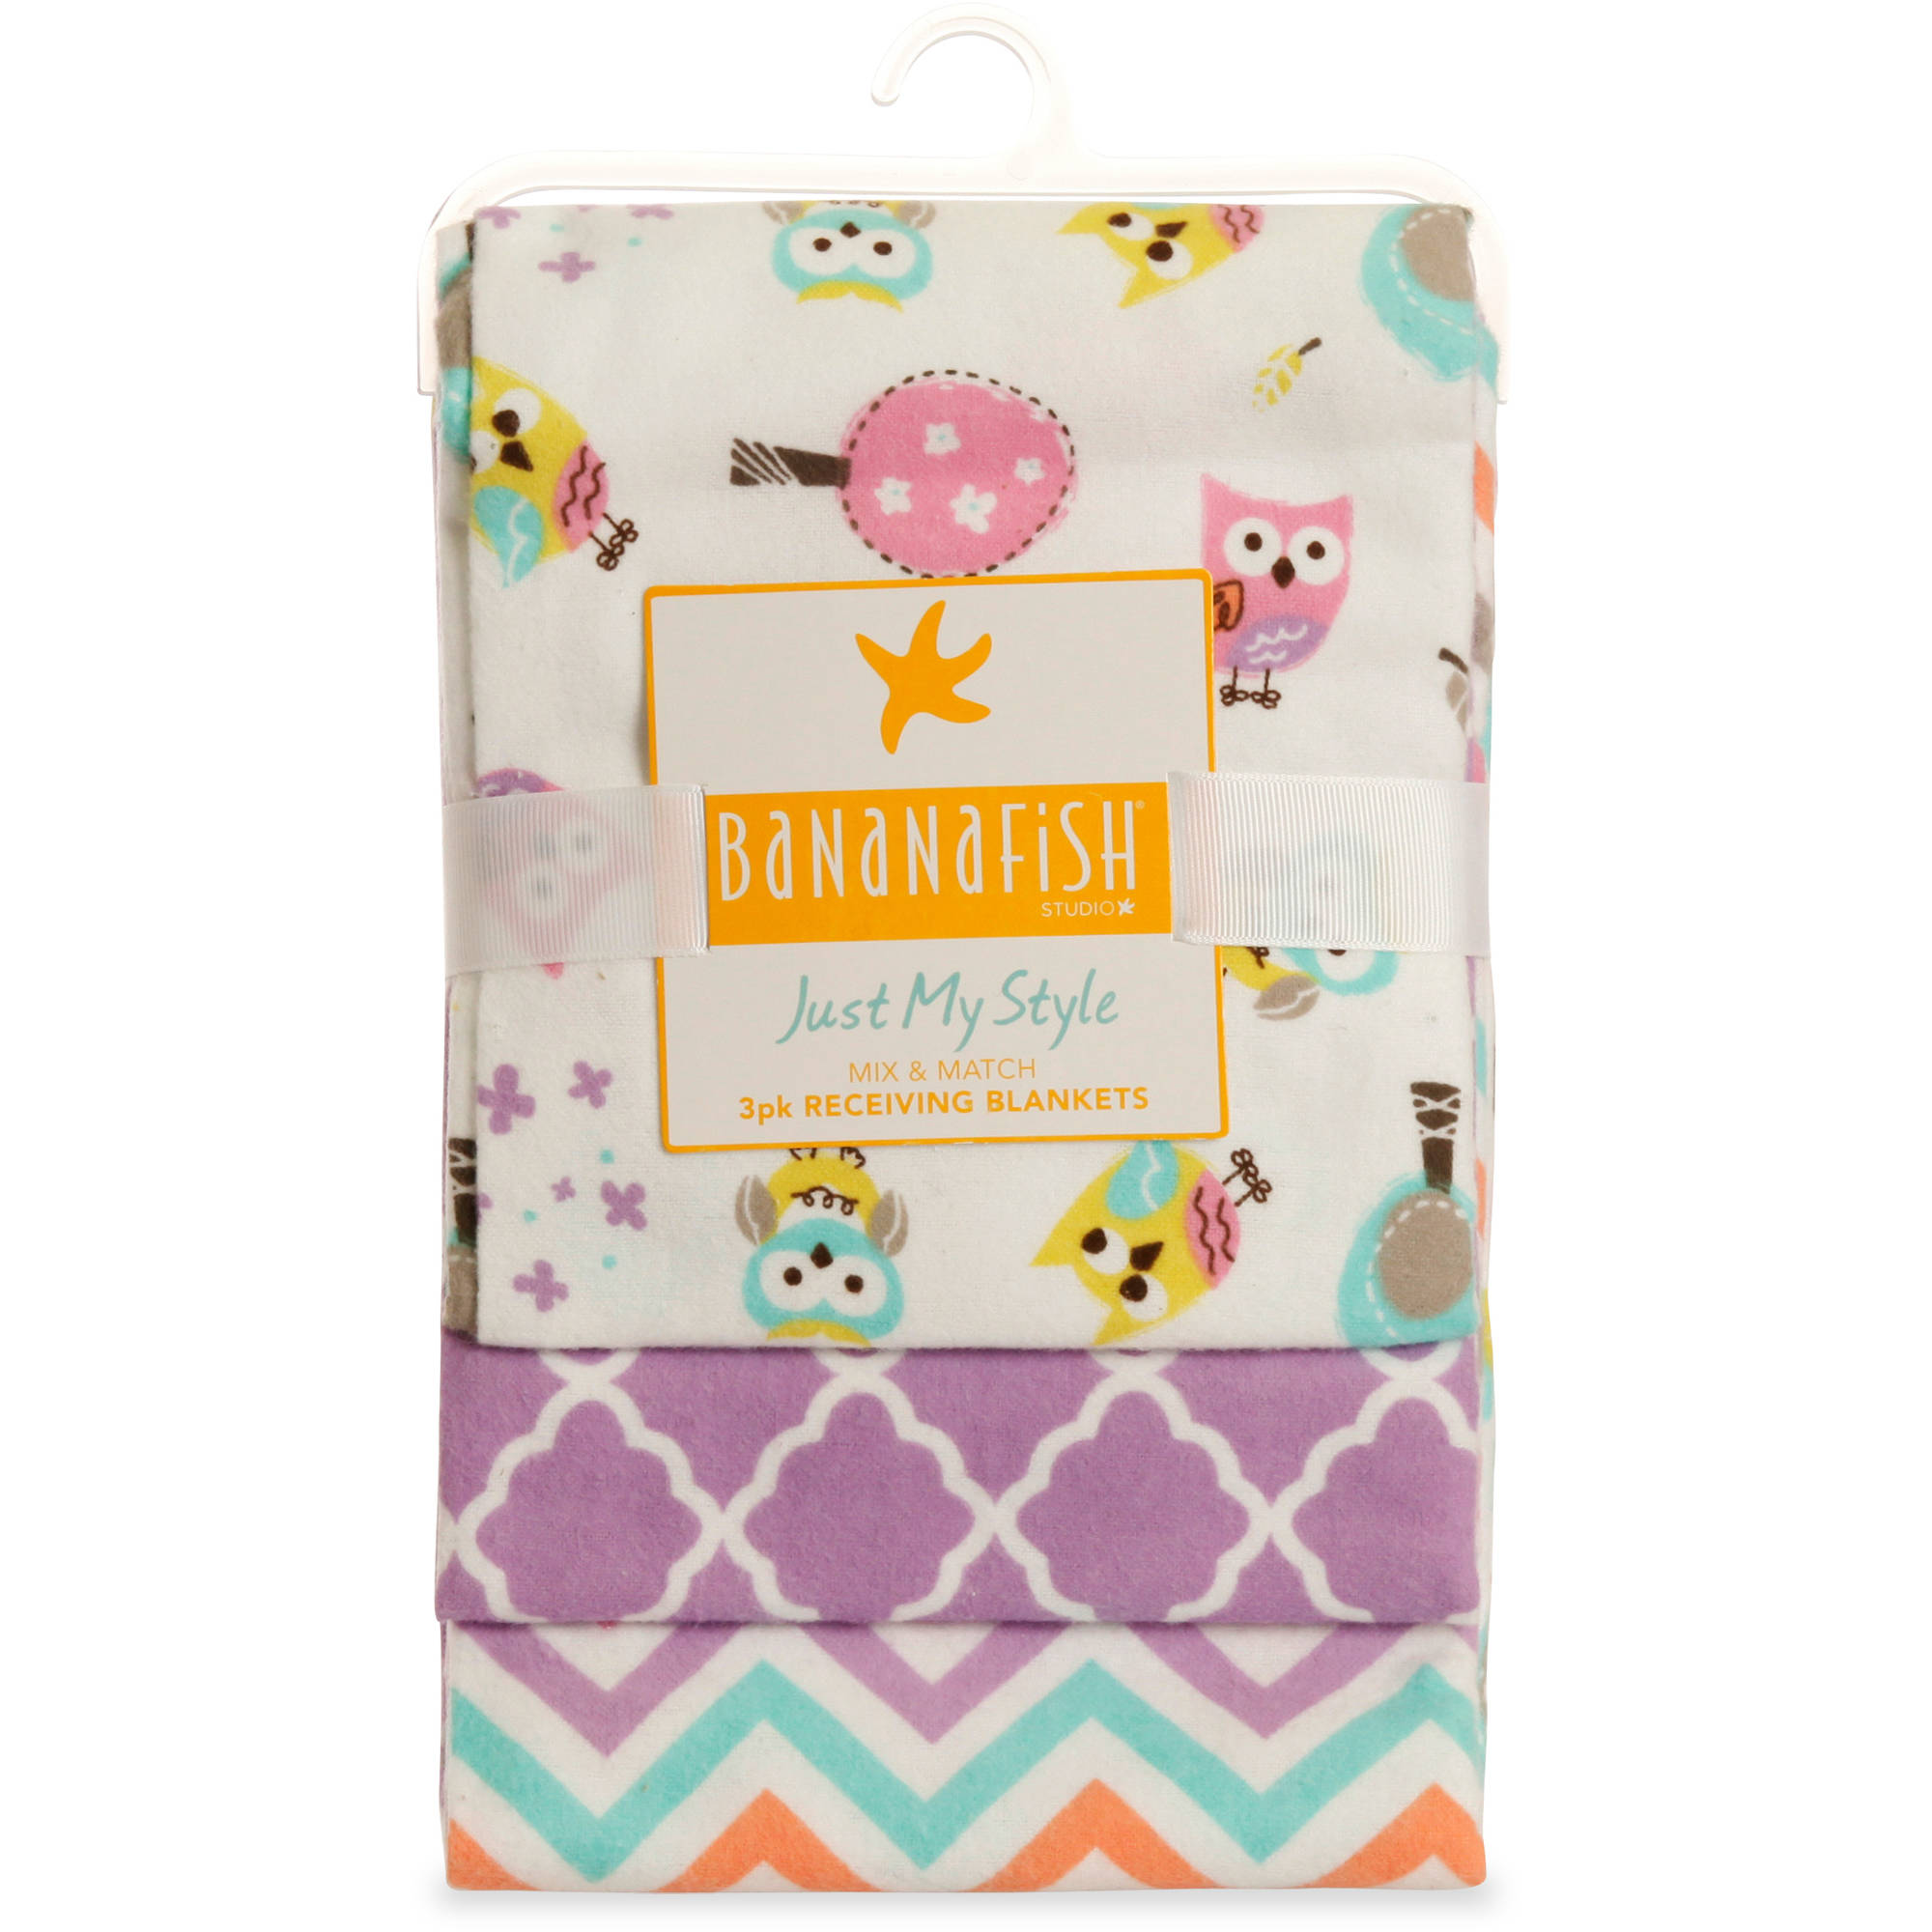 Bananafish Studio Sweet Owl Girl Receiving Blankets, 3pk